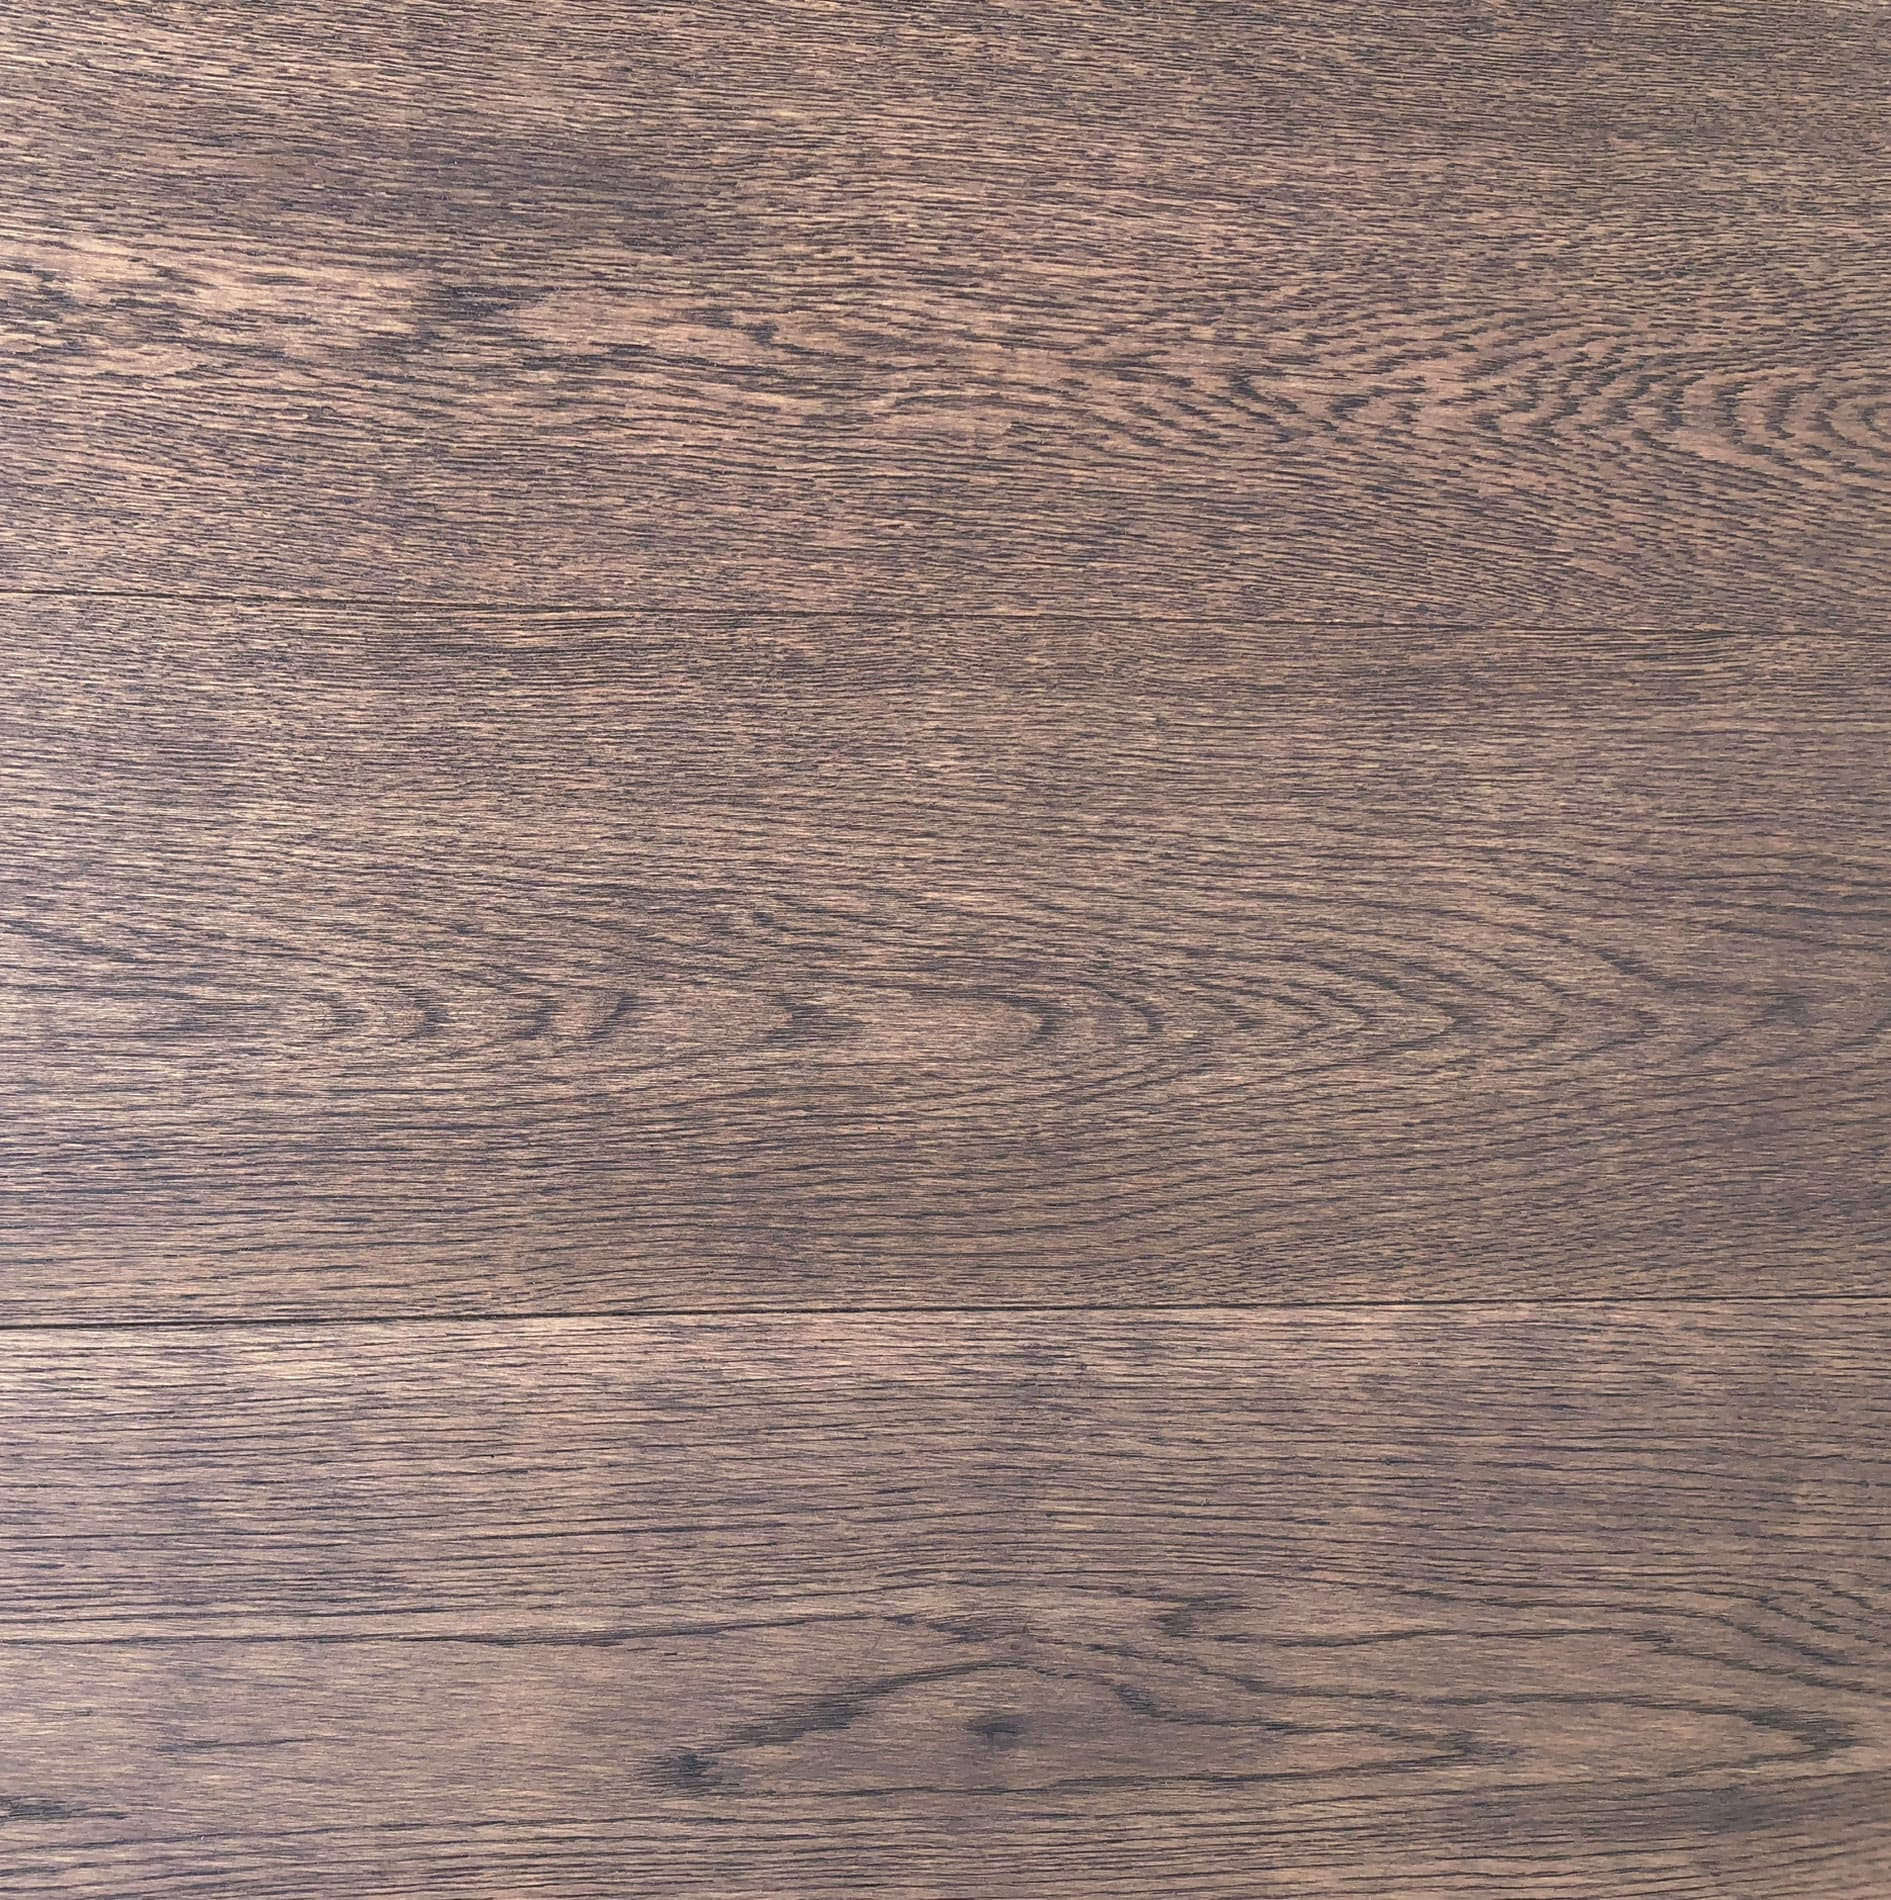 Wild wood oak engineered